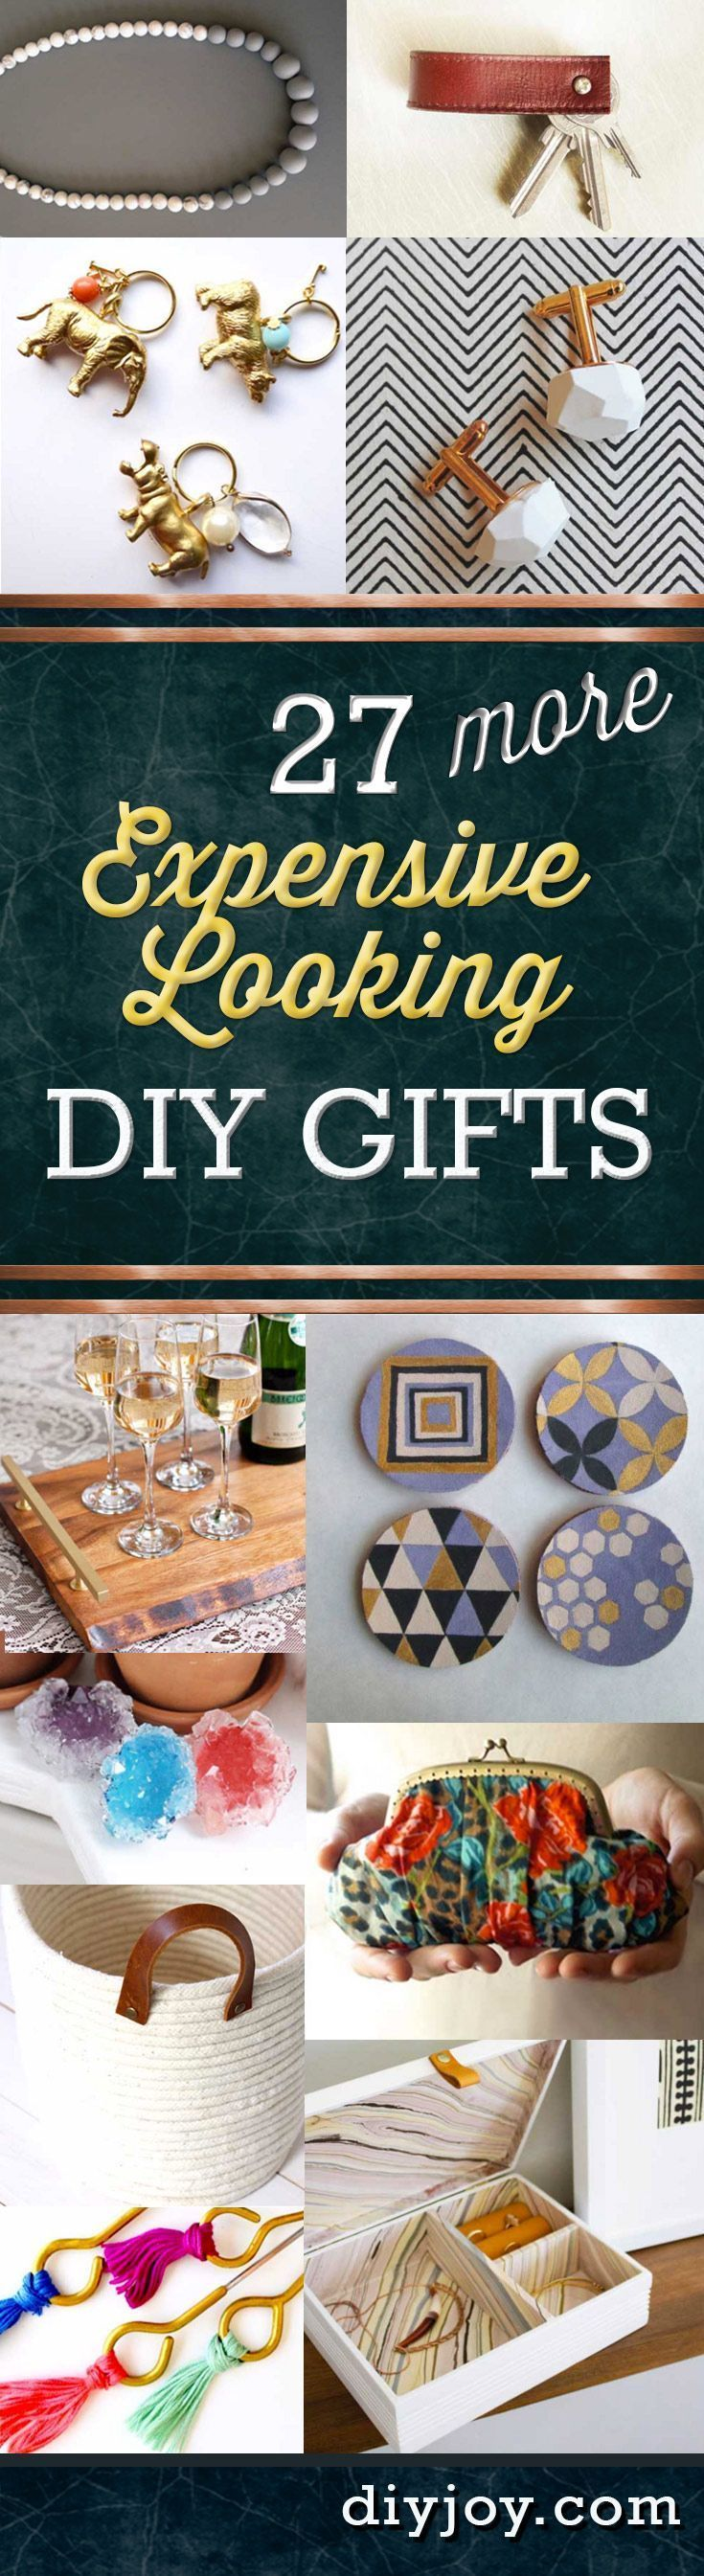 27 MORE Expensive Looking DIY Gifts. Crafts and DIY Gift Ideas for Him, for Her, for Family and Friends.  Perfect for Birthday, Christmas, Mom and Dad. http://diyjoy.com/homemade-diy-gifts-pinterest